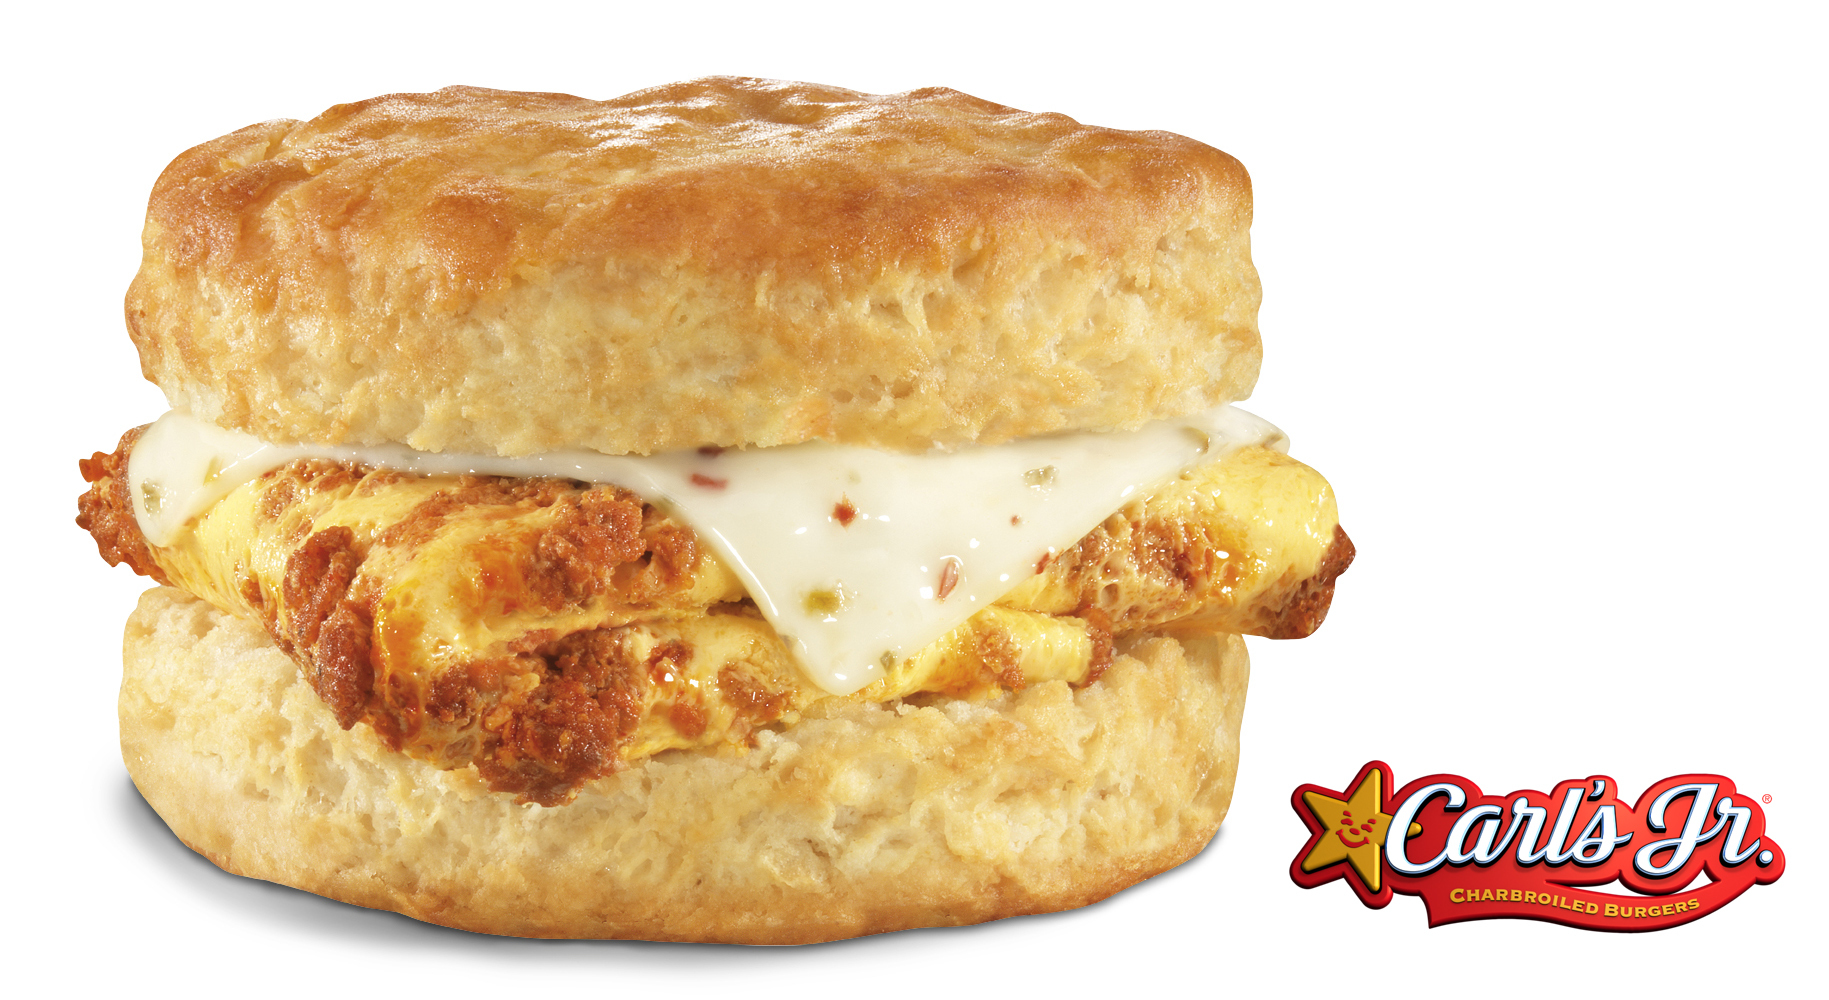 The new Made from Scratch™ Chorizo, Egg & Cheese Biscuit, now available at Carl's Jr. (Photo: Business Wire)